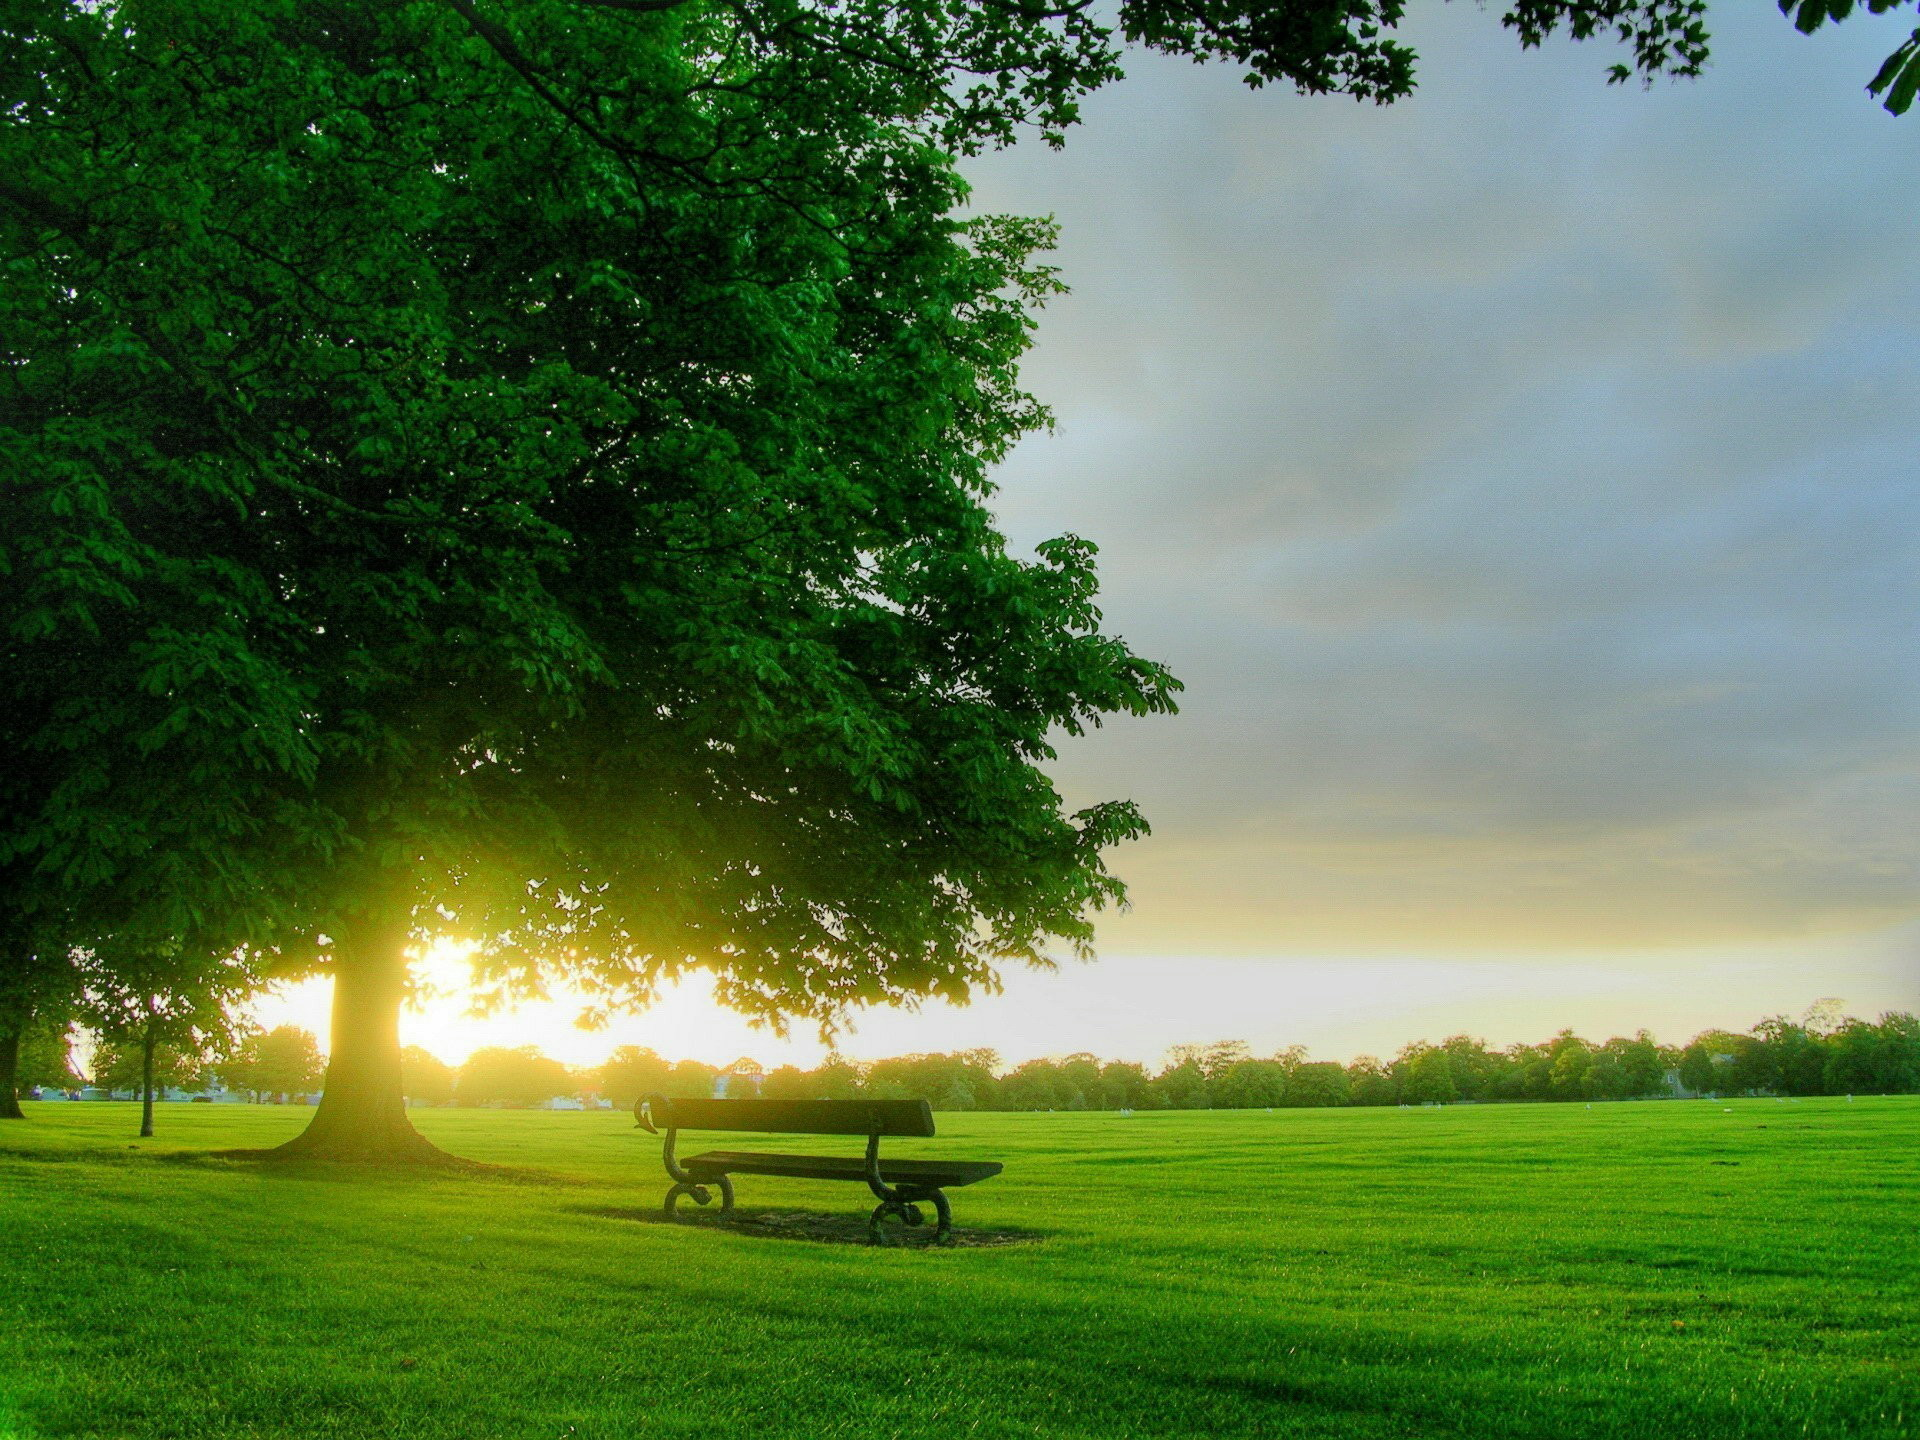 green scenery images hd